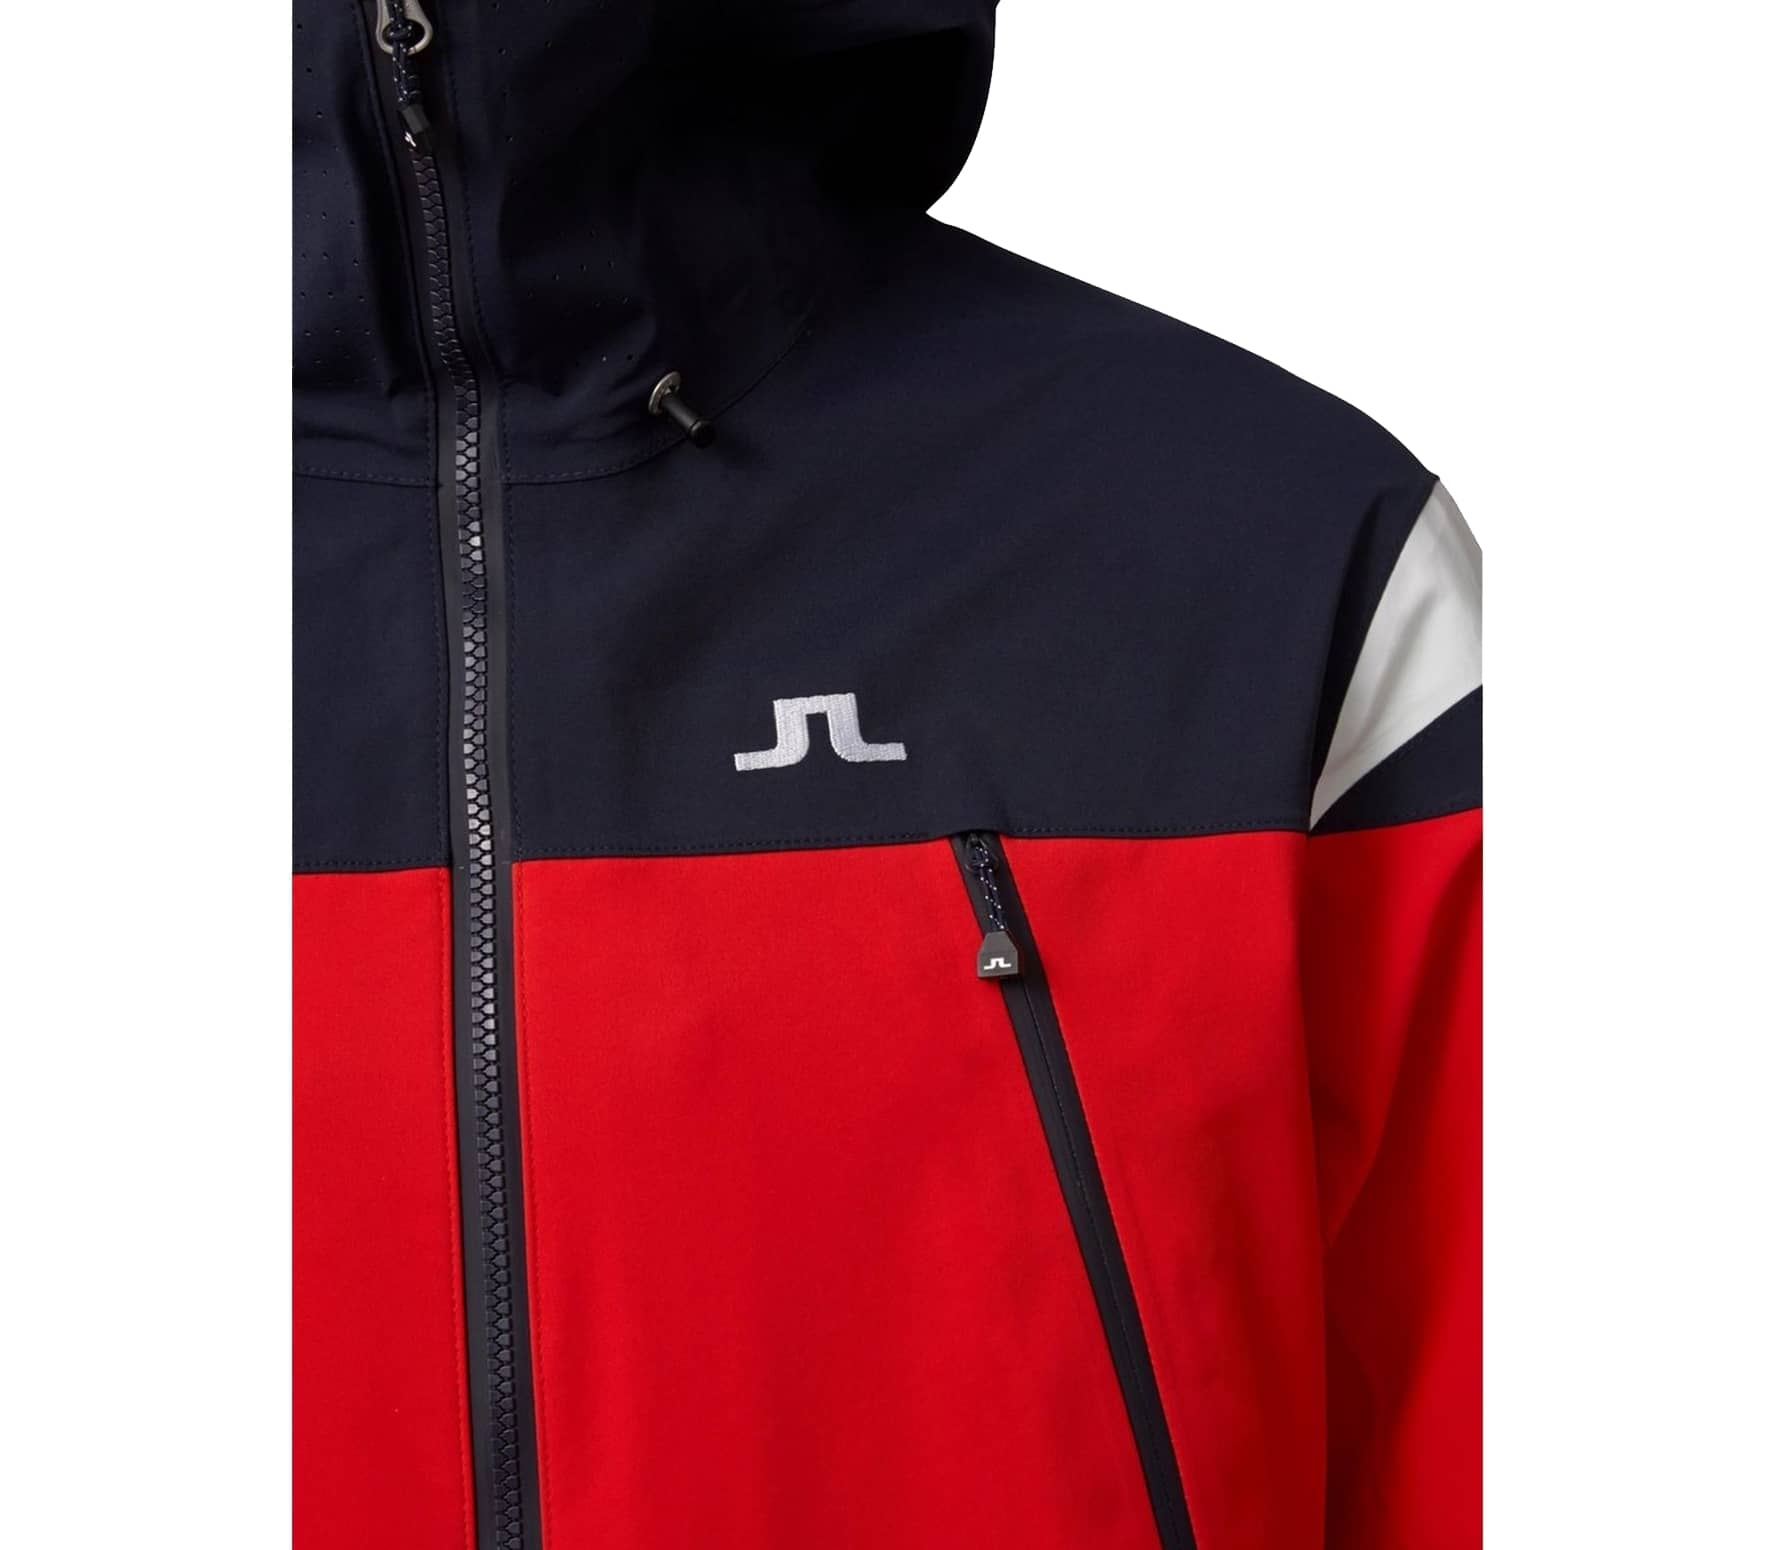 J.Lindeberg - Harper 3L GoreTex men's skis jacket (red/dark blue)